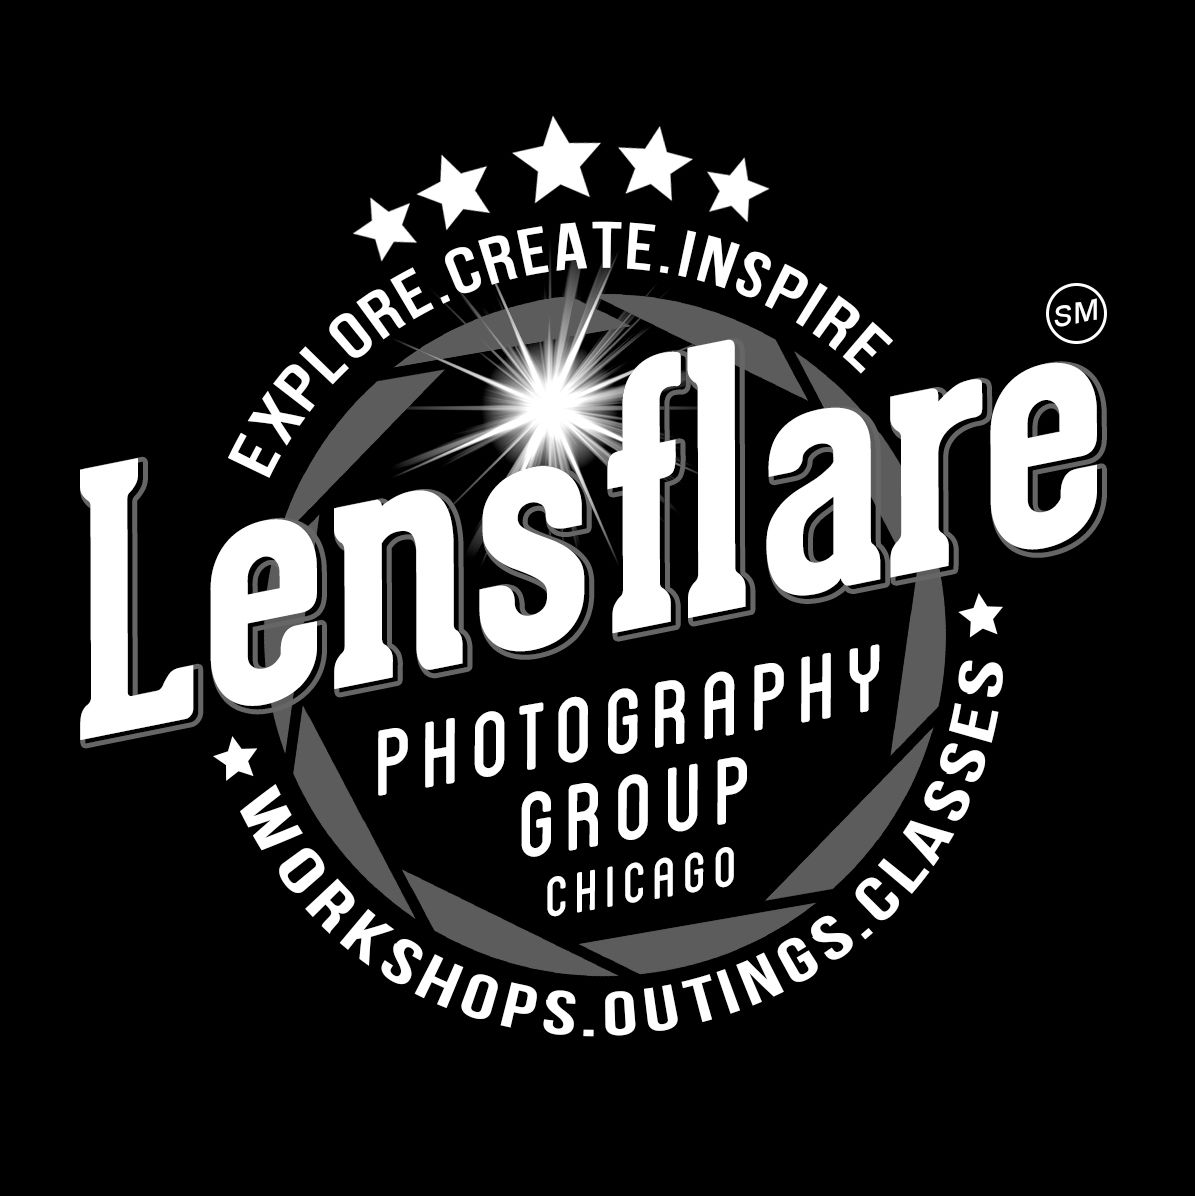 Lensflare Photography Group